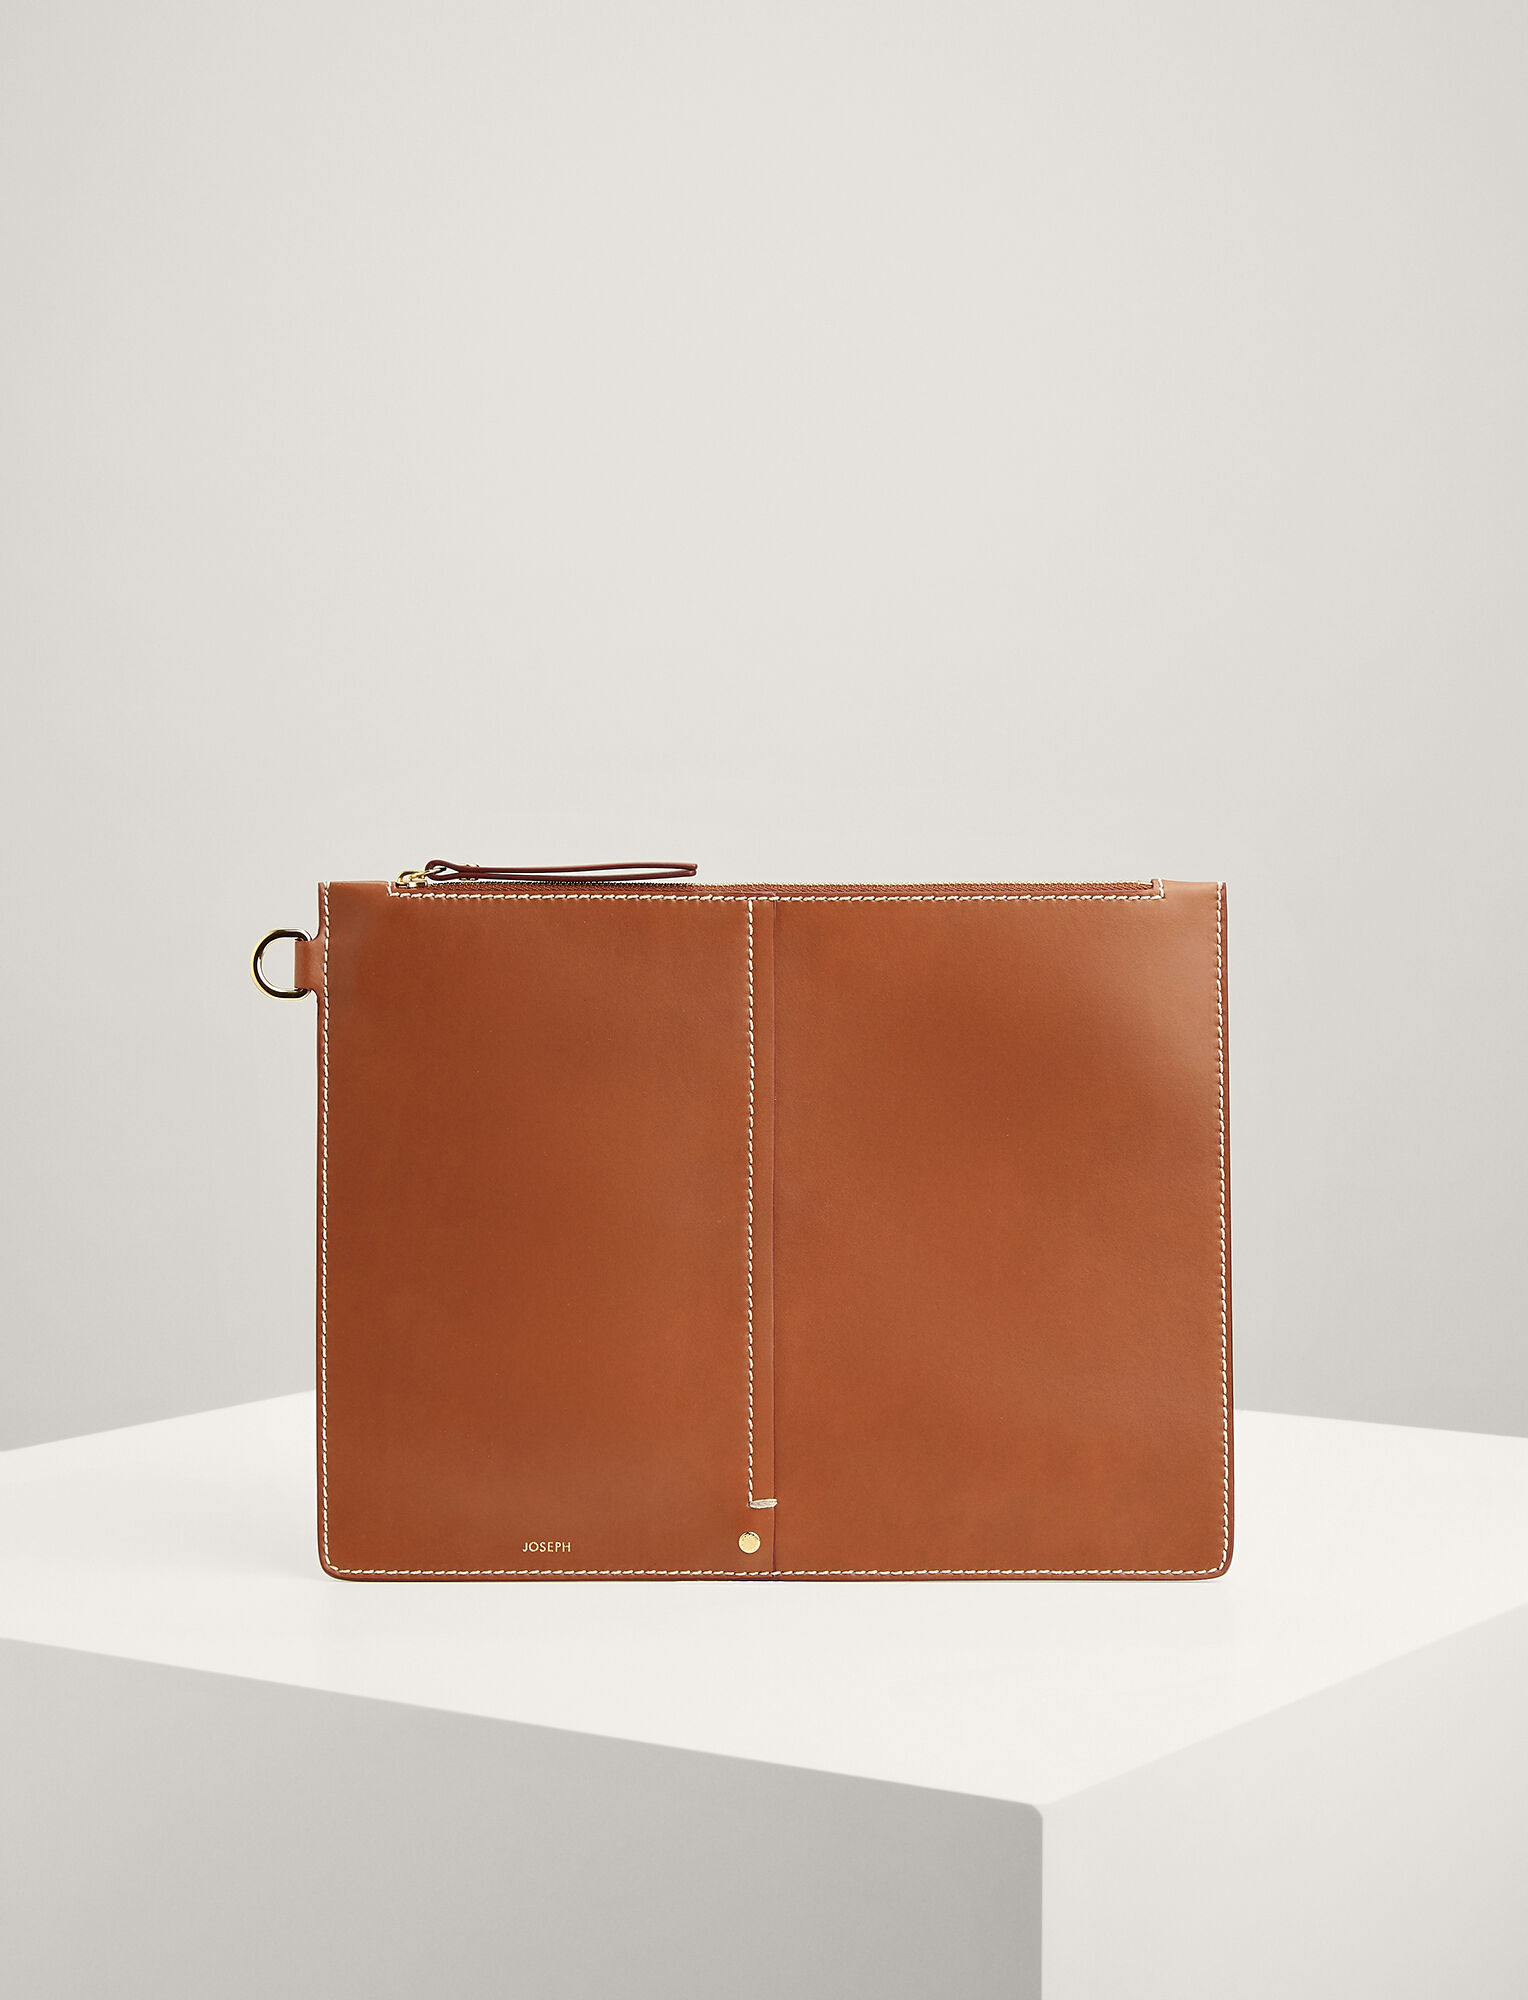 Joseph, Calf Leather XL Pouch, in SADDLE